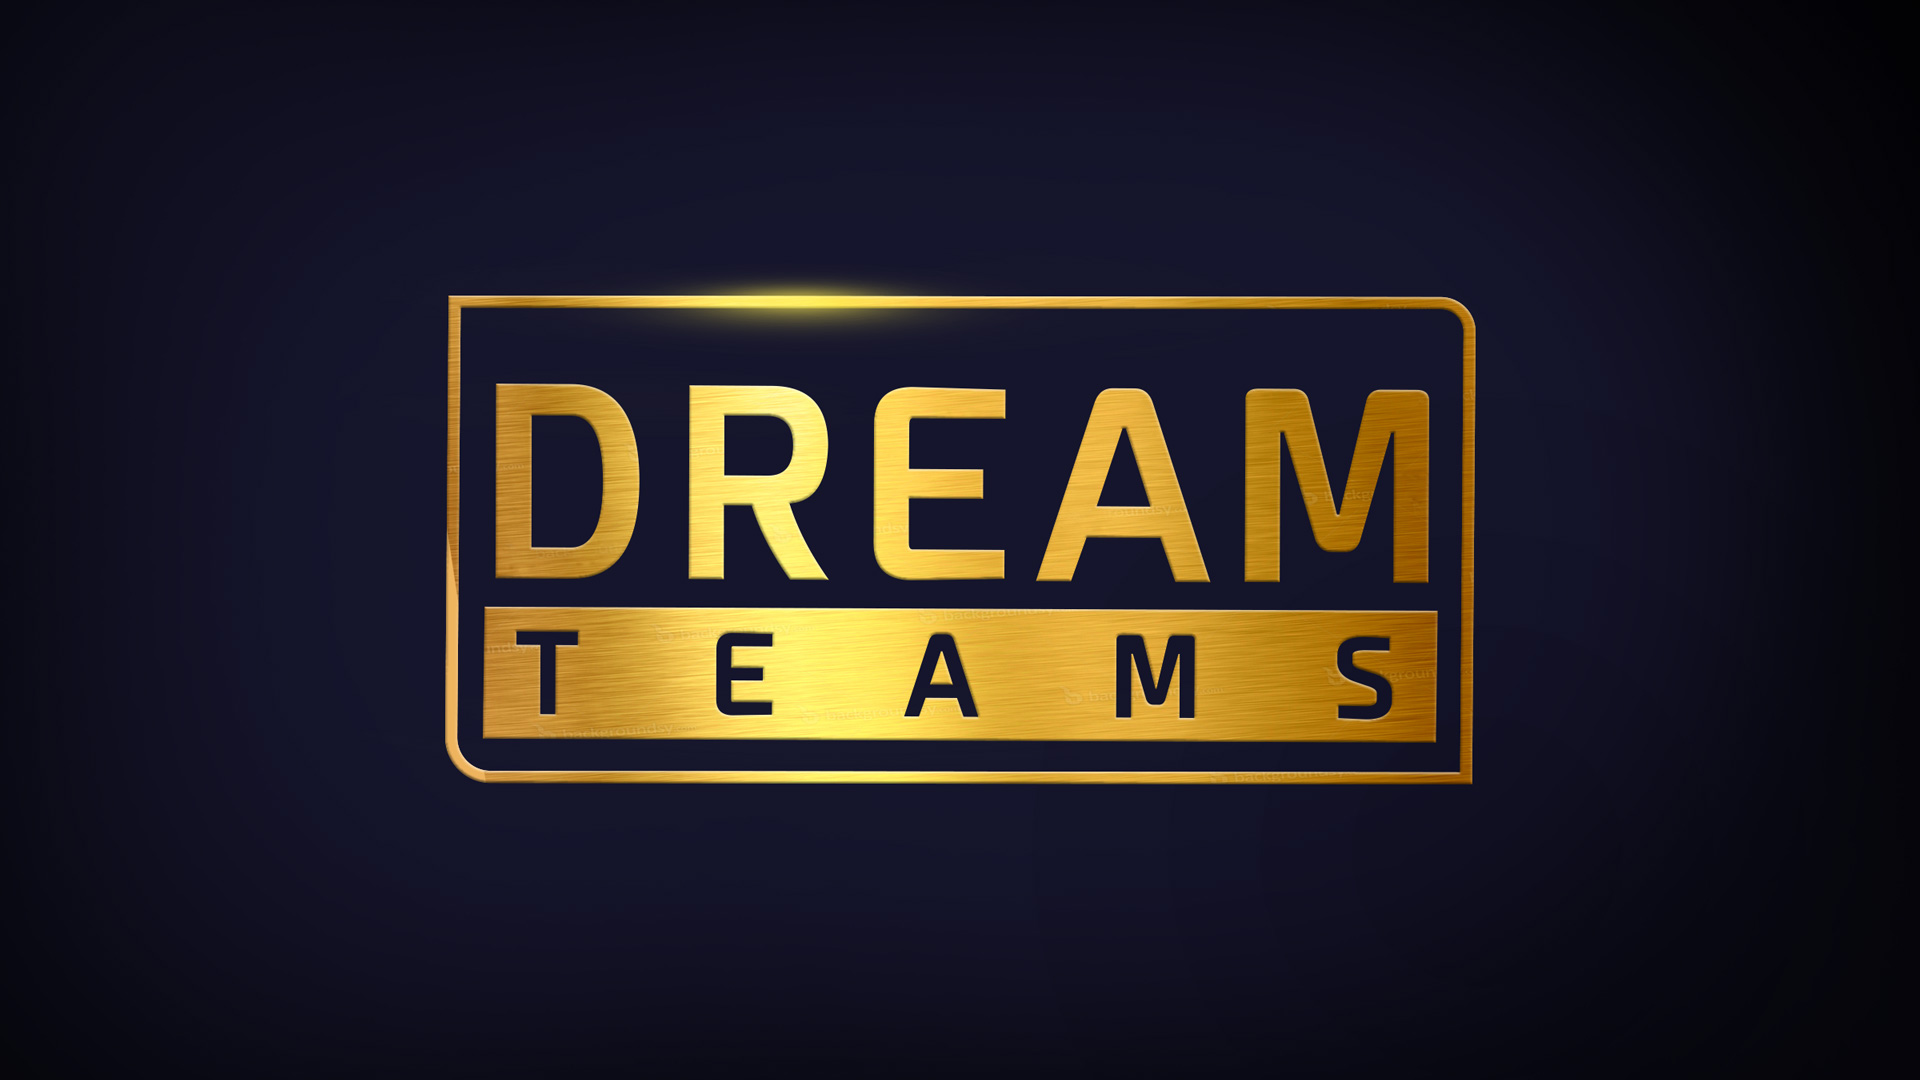 Dream team Logos.